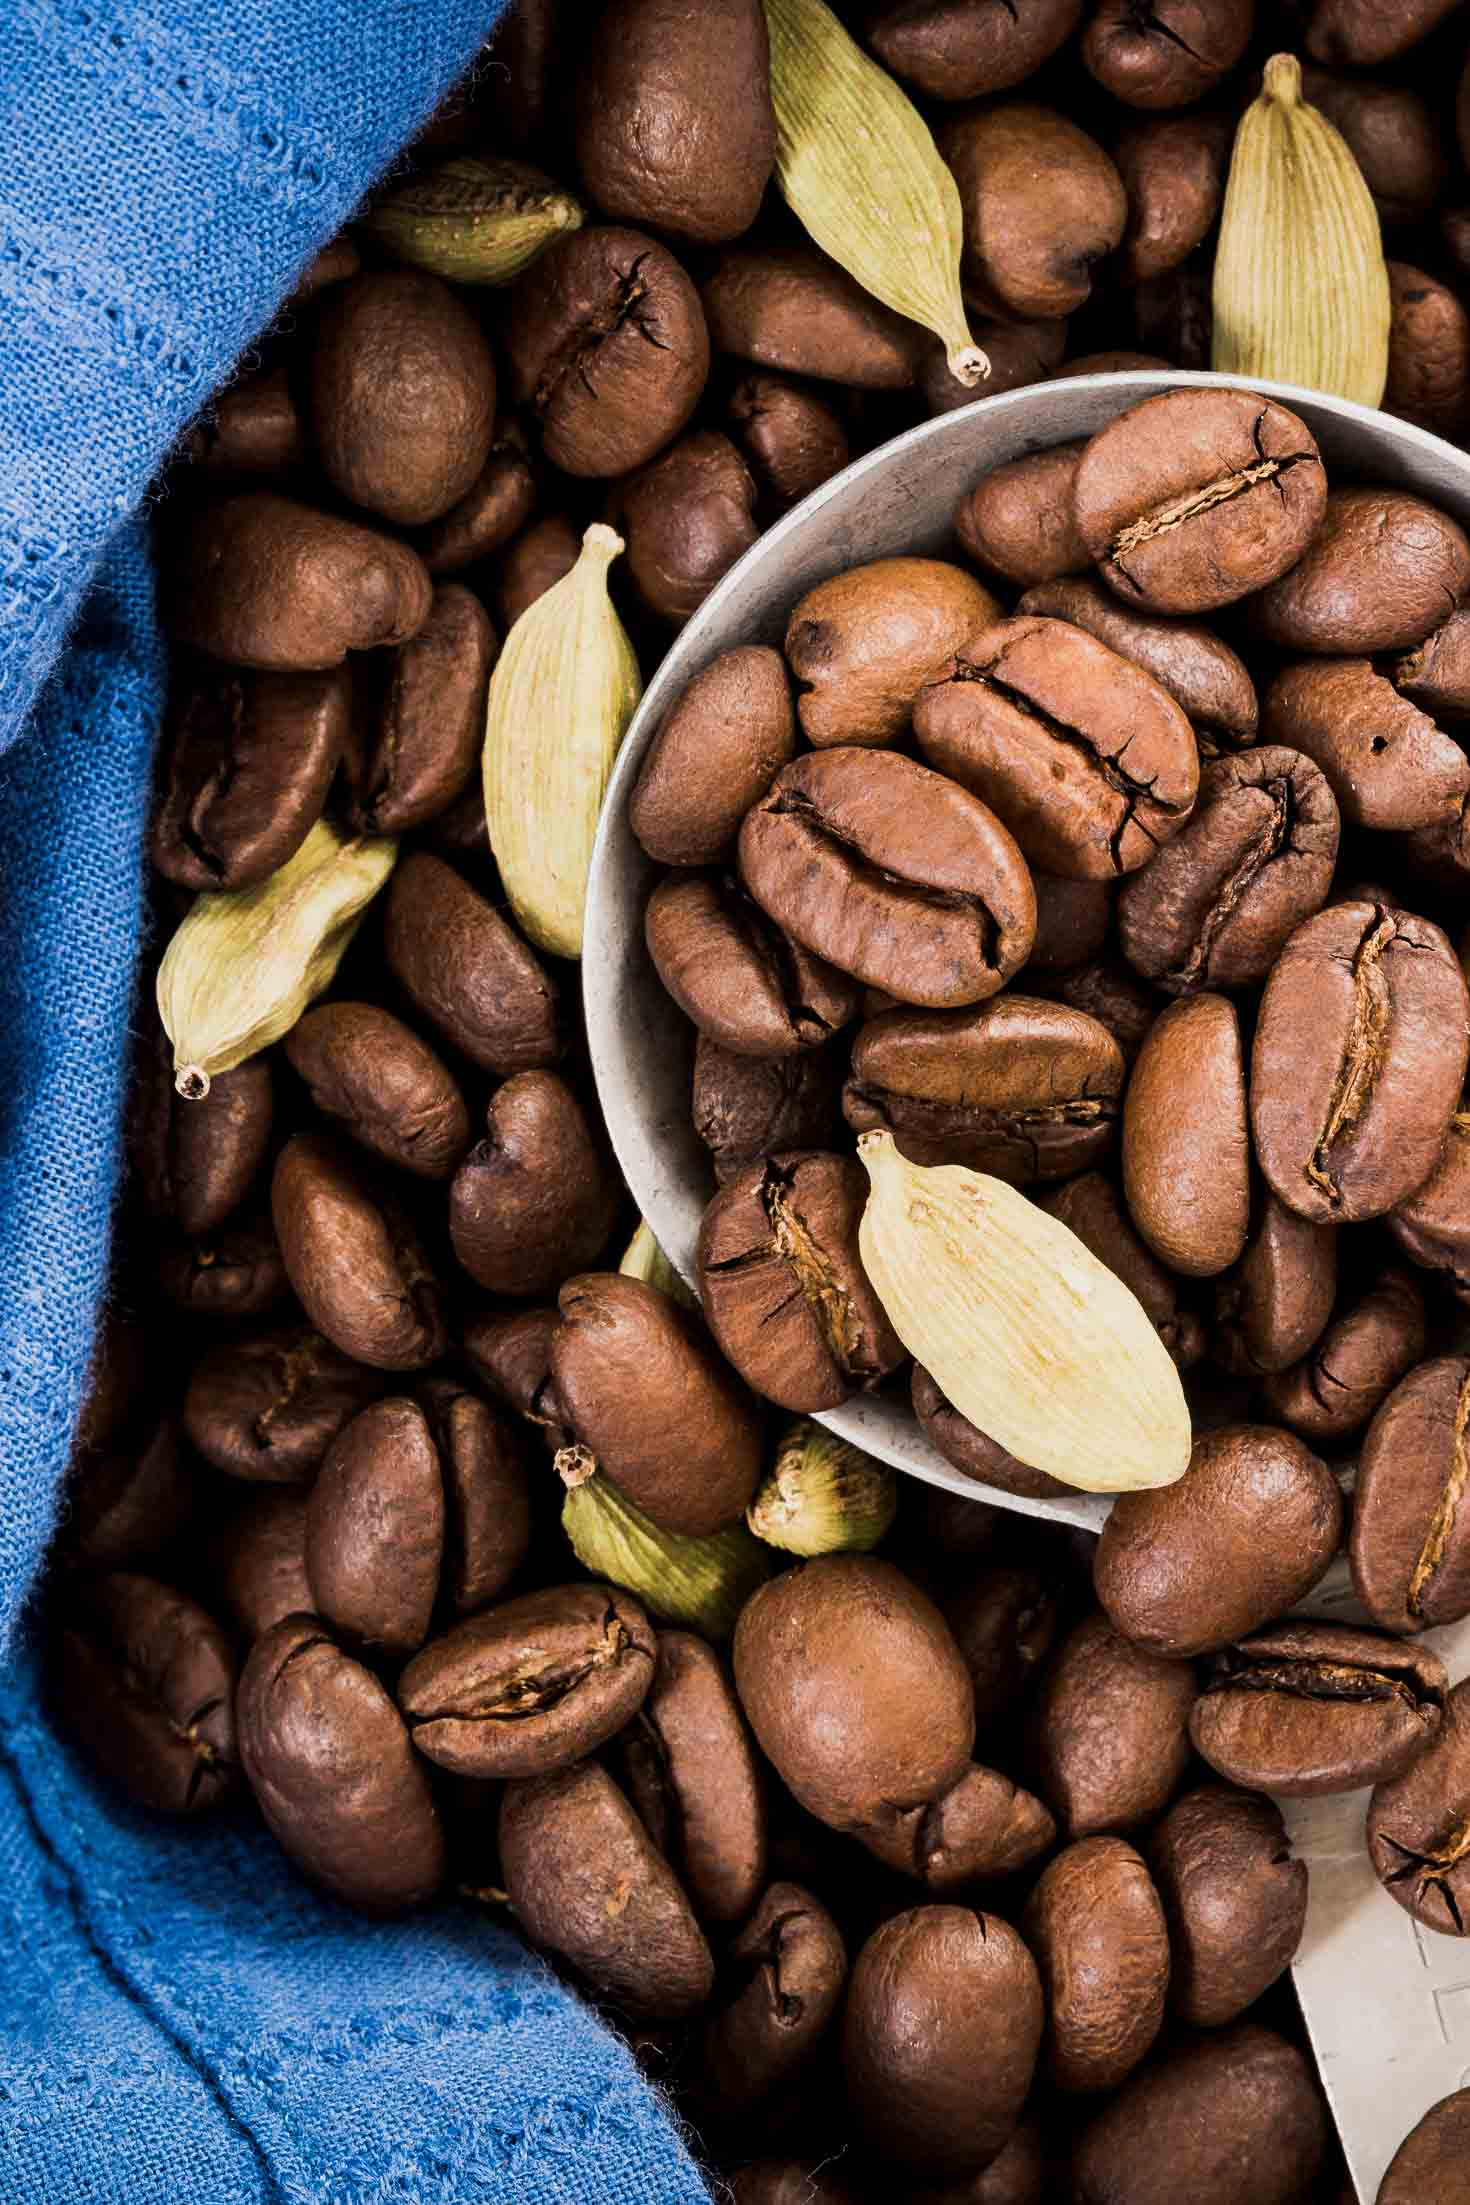 Cardamom Cold-Brewed Coffee-ingredients-cardamom pods with coffee beans